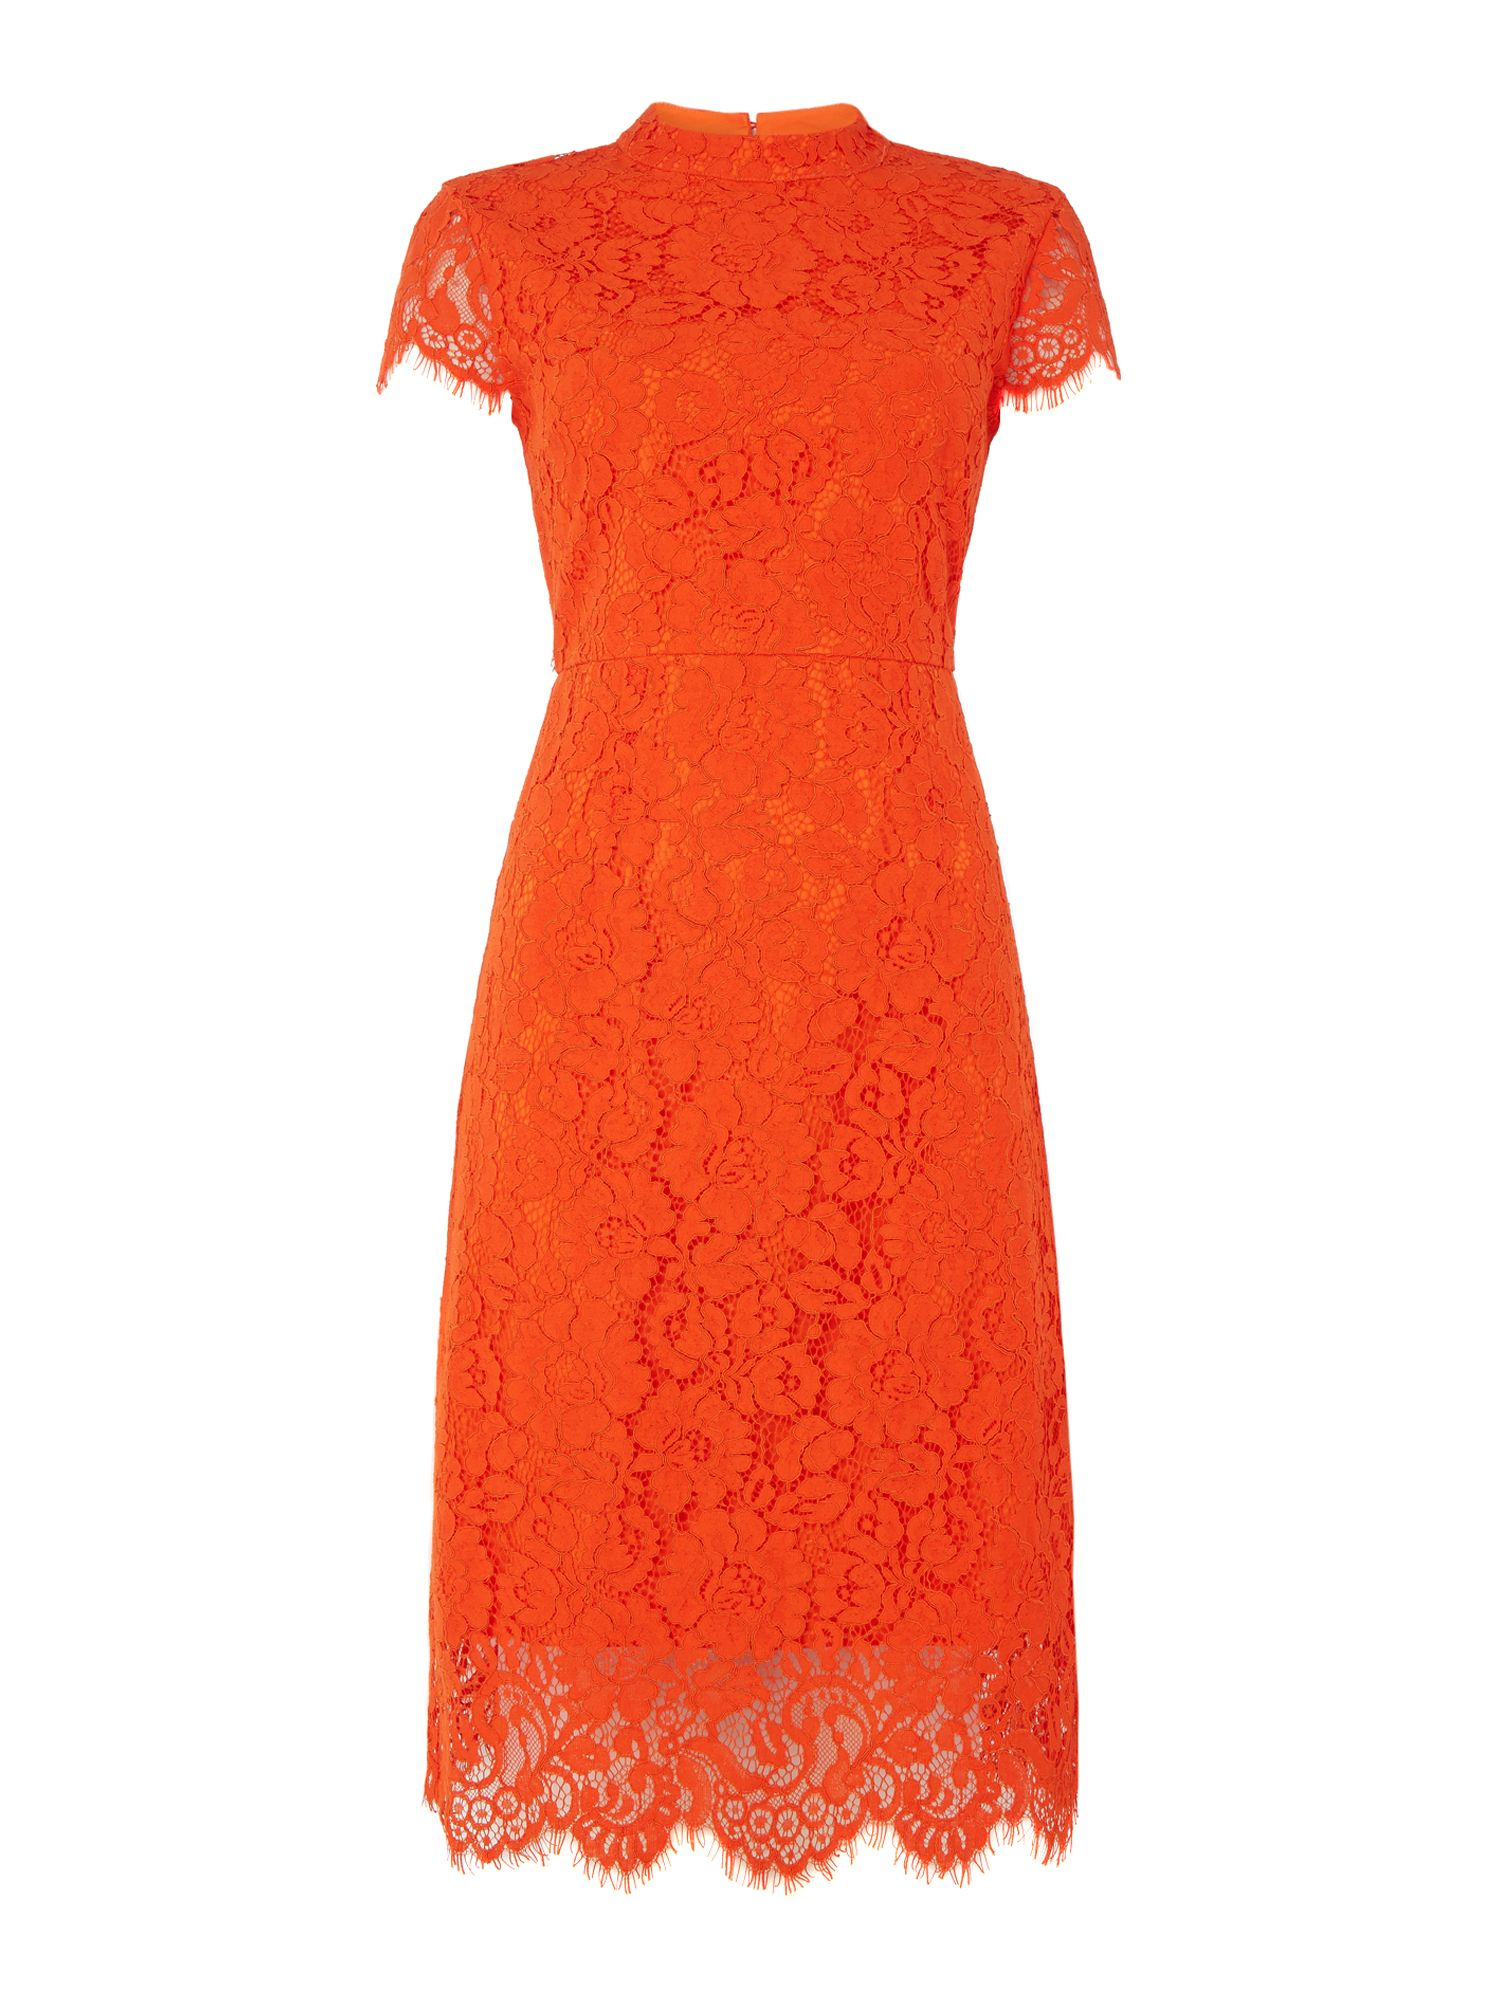 IVY & OAK Ivy & Oak Lace cocktail dress with cap sleeves, Orange